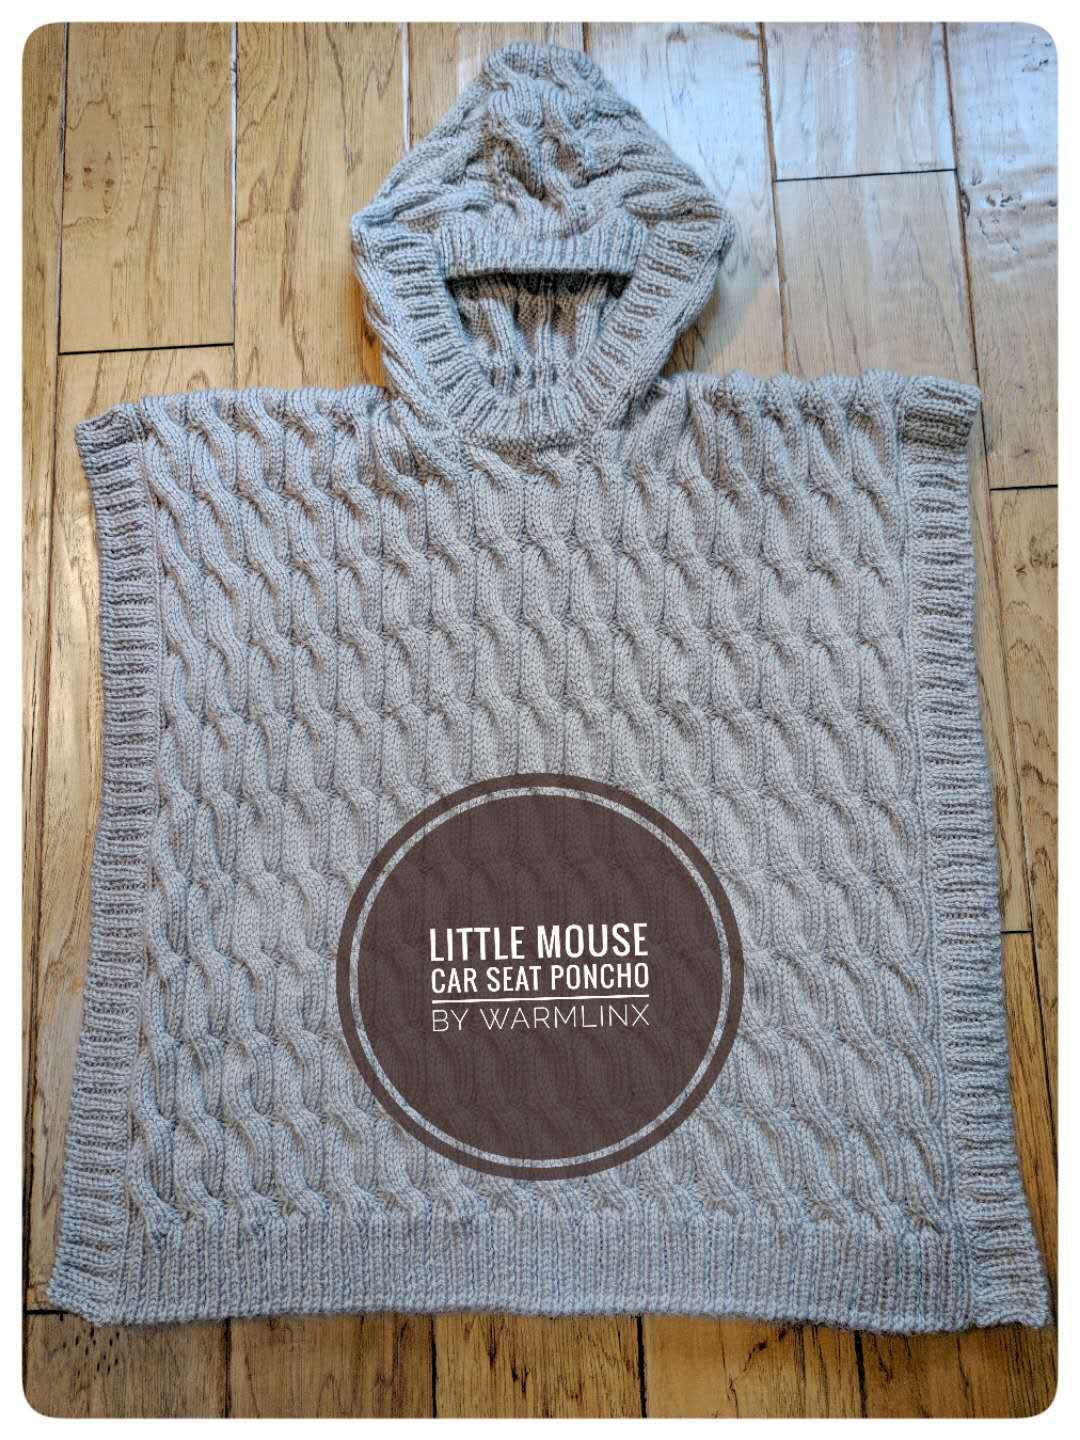 Baby Car Seat Blanket Free Pattern Little Mouse Carseat Poncho Knitting Pattern Knit Crochet